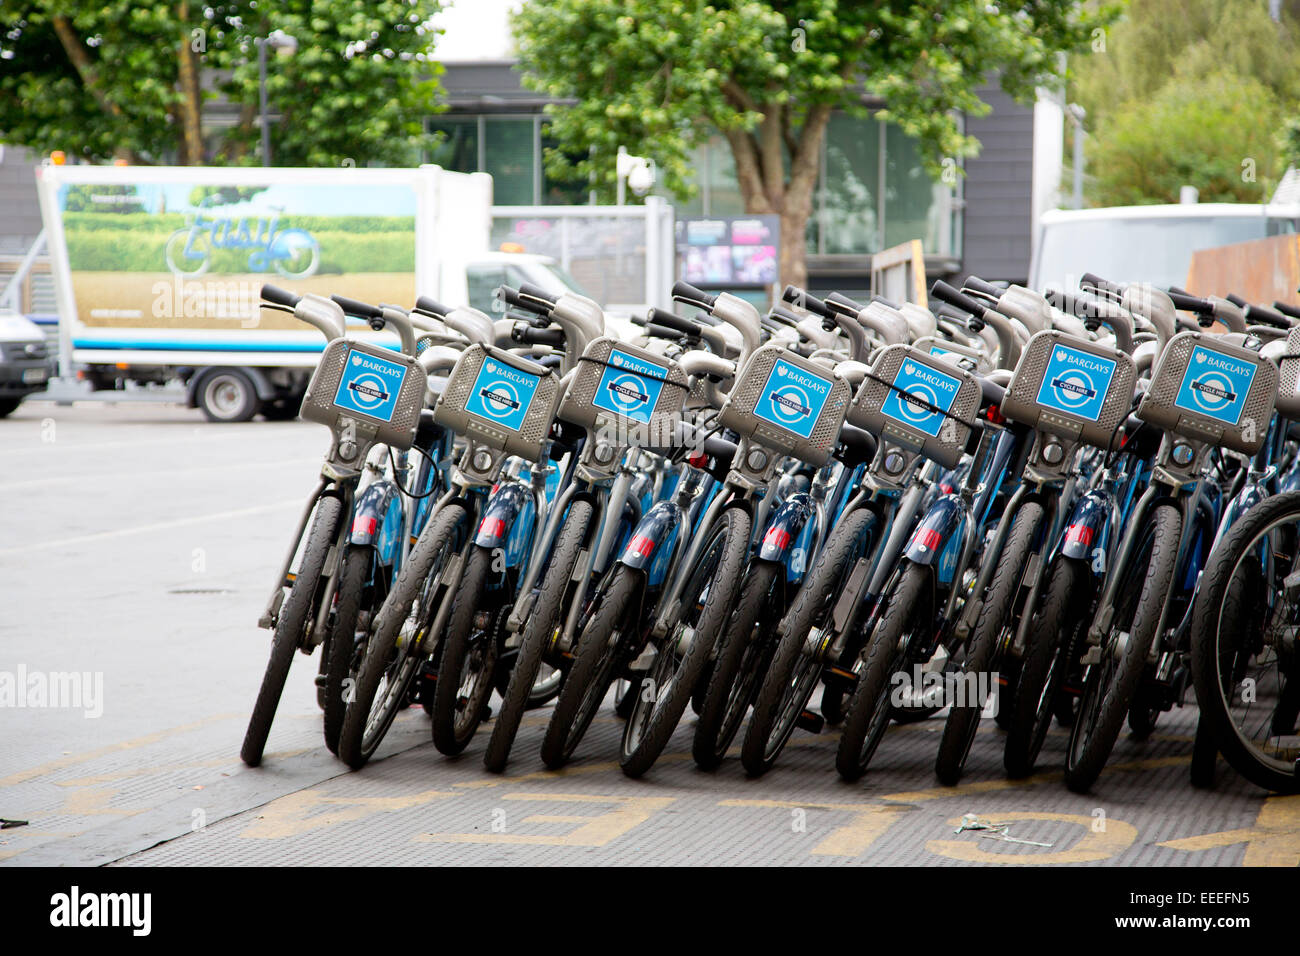 Stacks of repaired Cycle Hire bikes at Penton Street depot - Stock Image